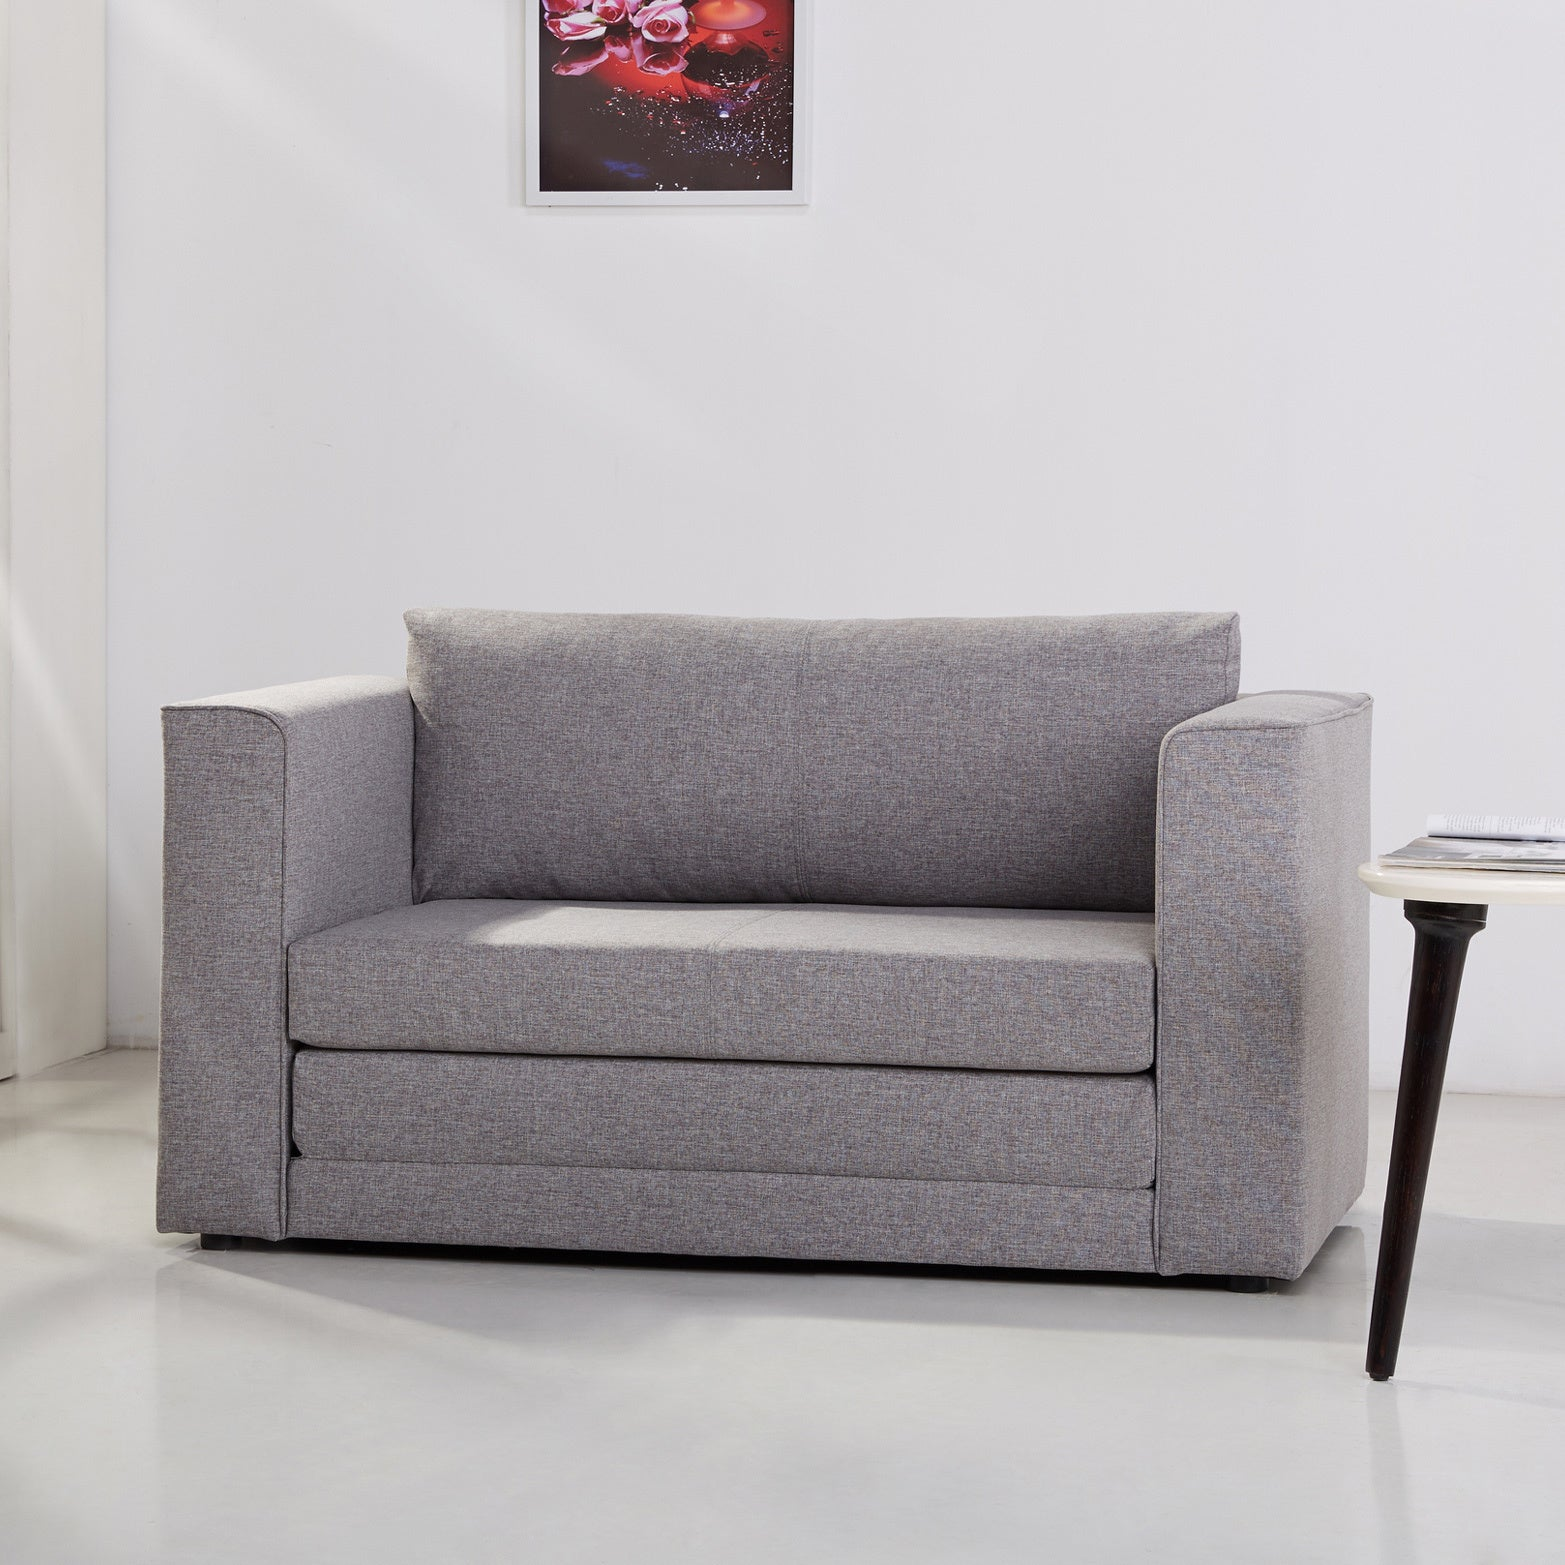 overstock shipping product gray free sleeper garden albany dark today home loveseat convertible